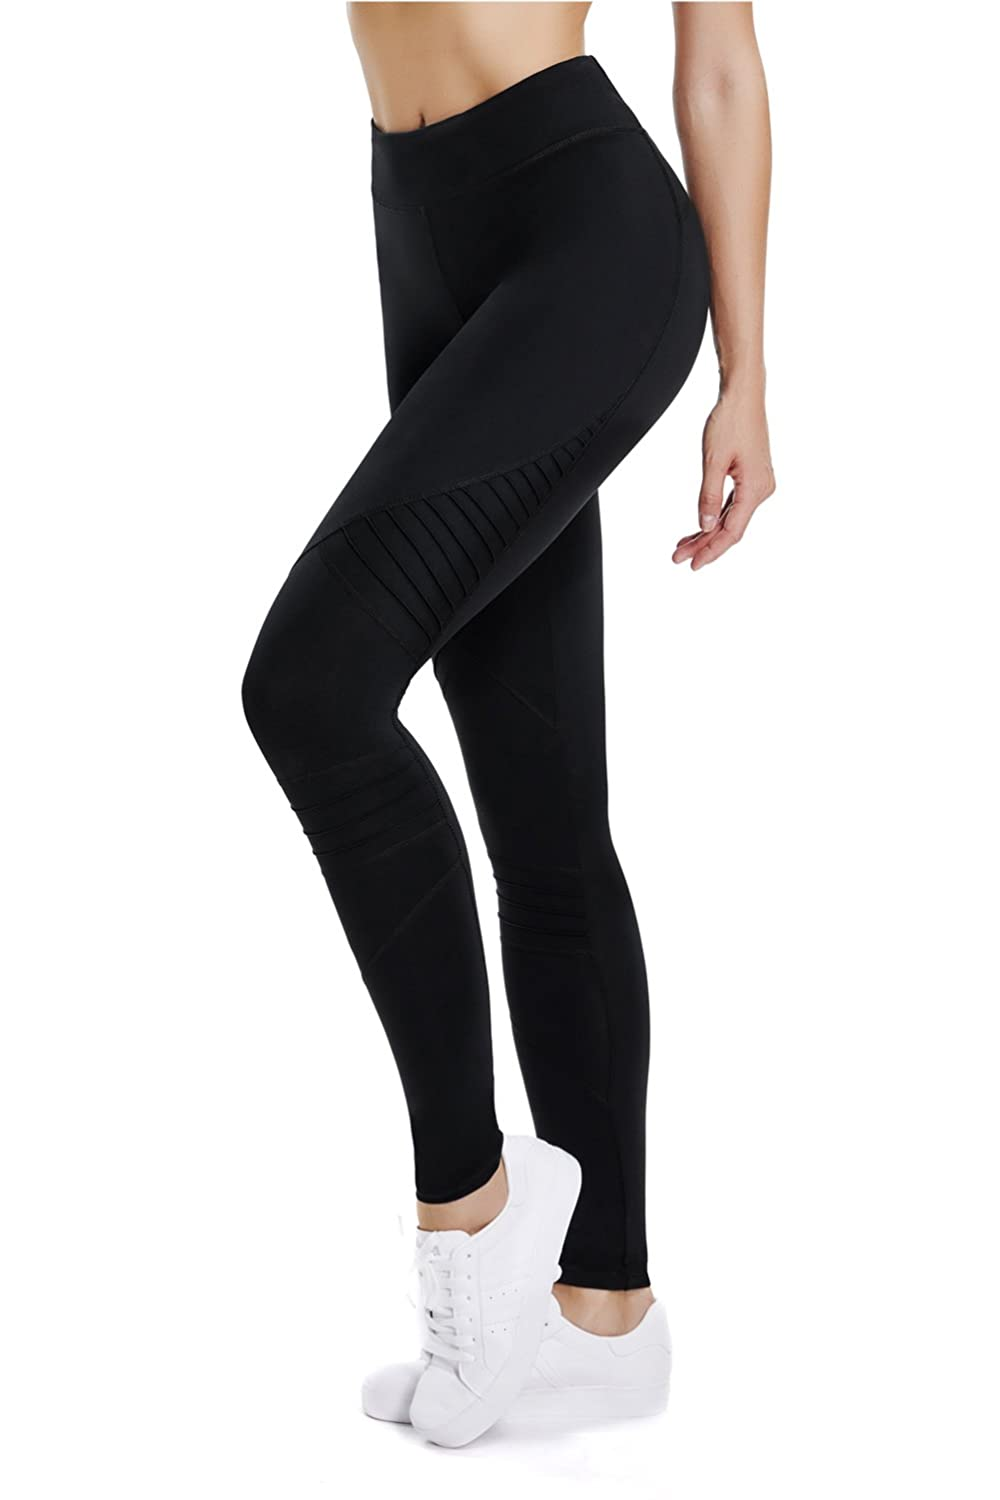 9b15d7b470a67 Cute Design Yoga Pants that make pleated on the knee. Keep up with the  fashion trends. The Yoga Pants use breathable fabric with Gusset, provides  max ...